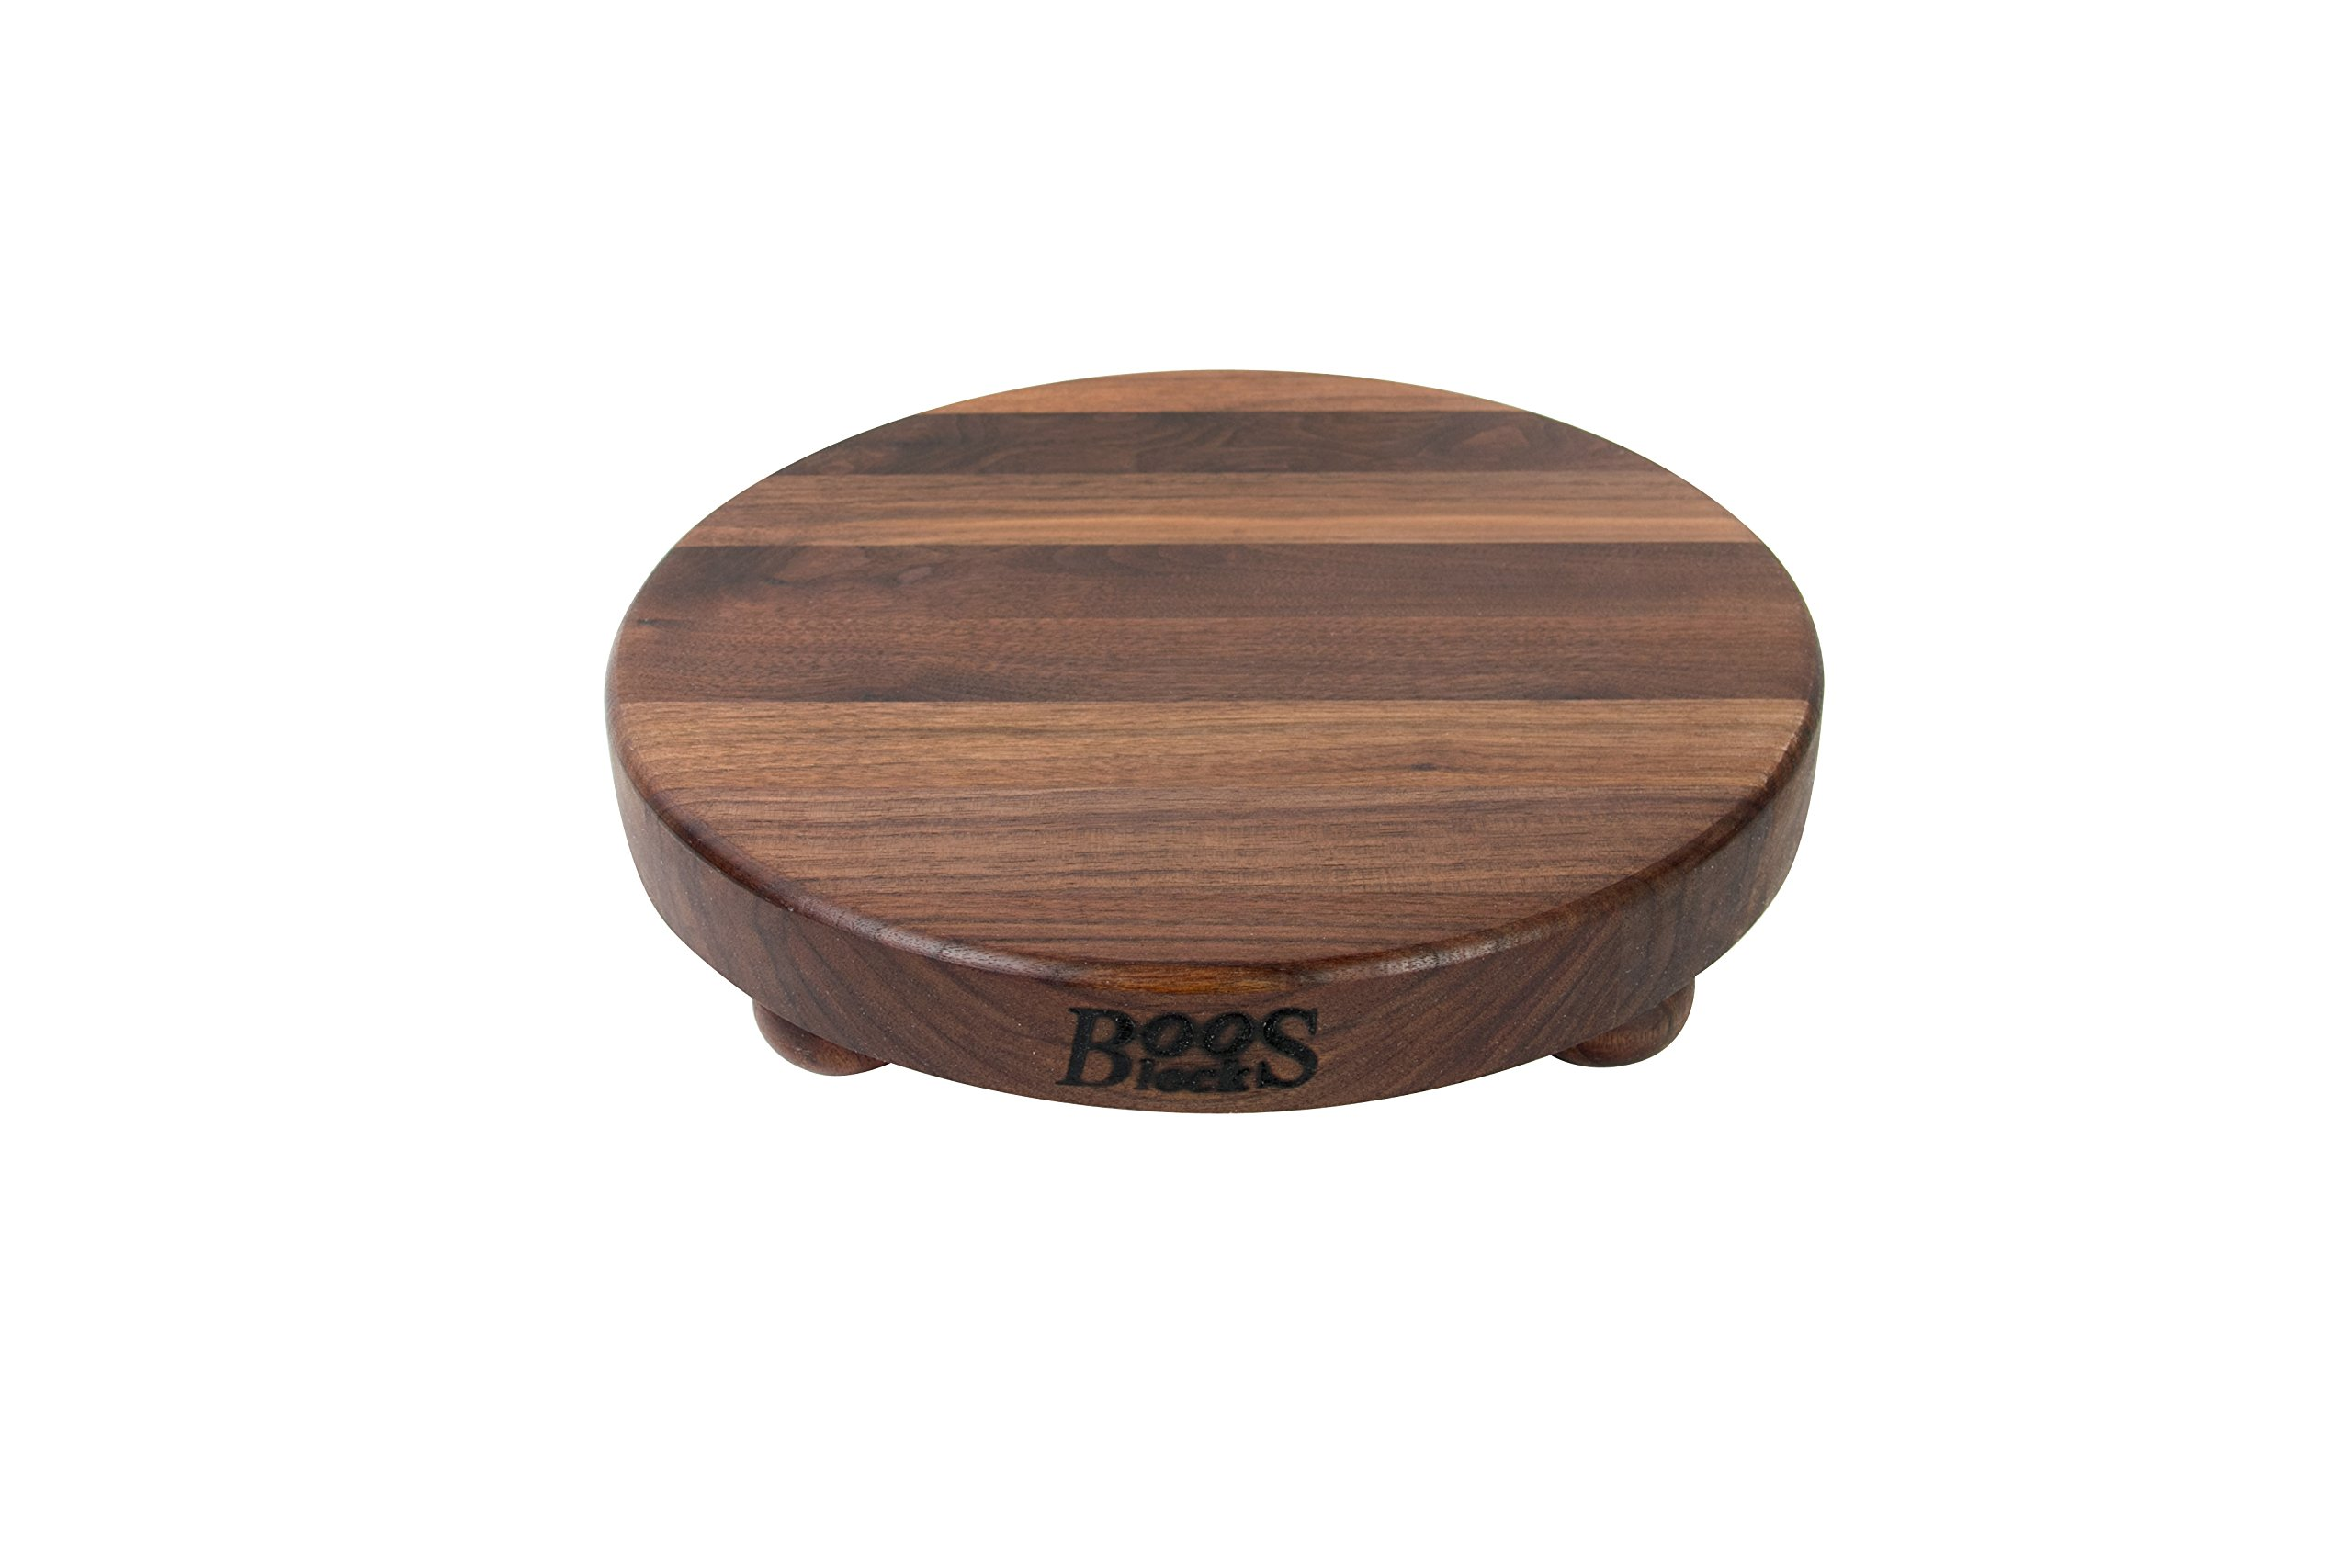 John Boos Block WAL-B12R Round Walnut Wood Edge Grain Cutting Board with Feet, 12 Inches Round, 1.5 Inches Thick